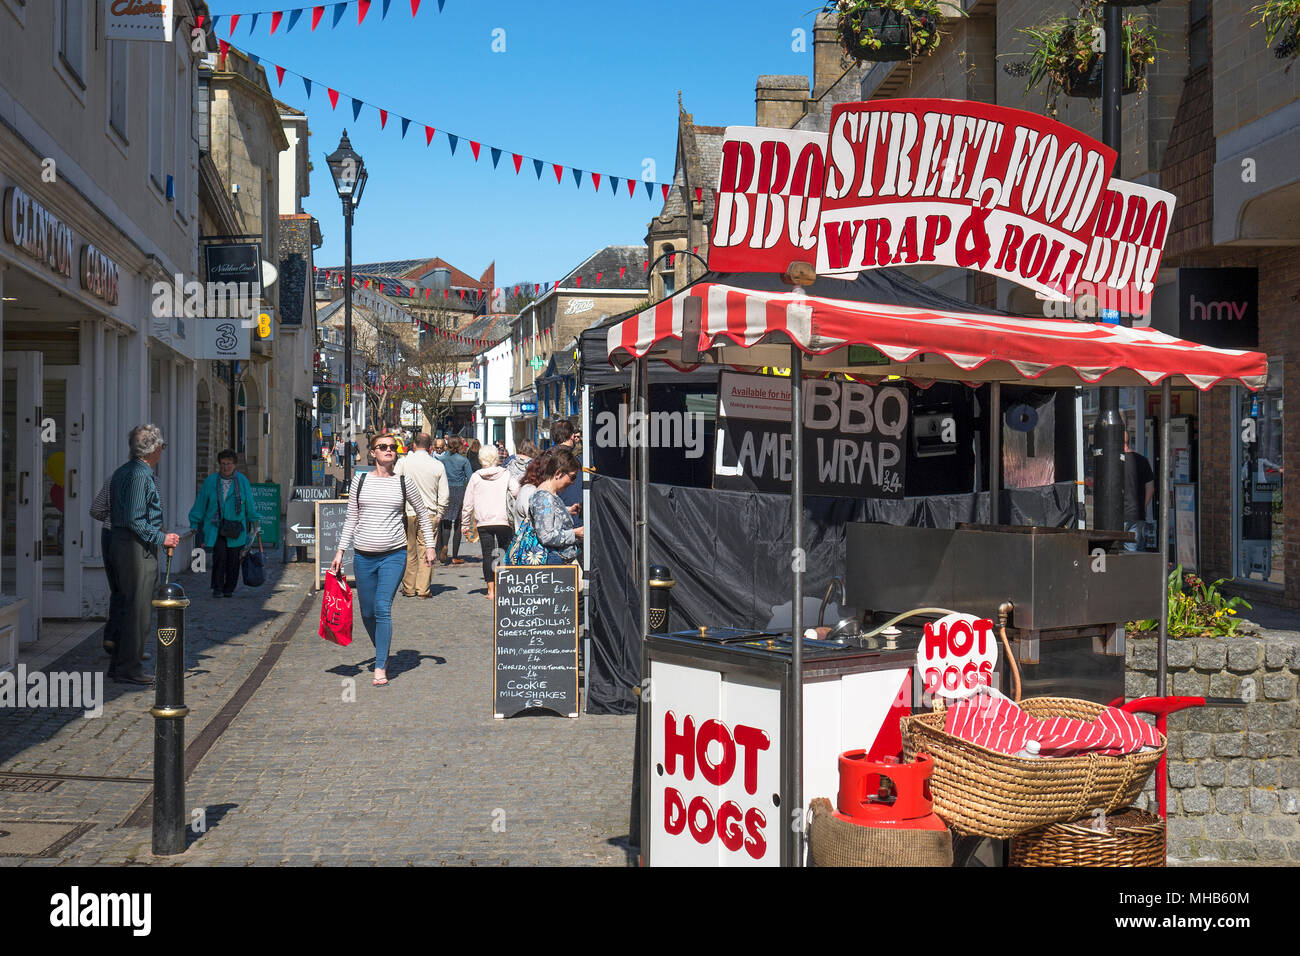 hot dog stand in truro, cornwall, england, britain, uk. - Stock Image